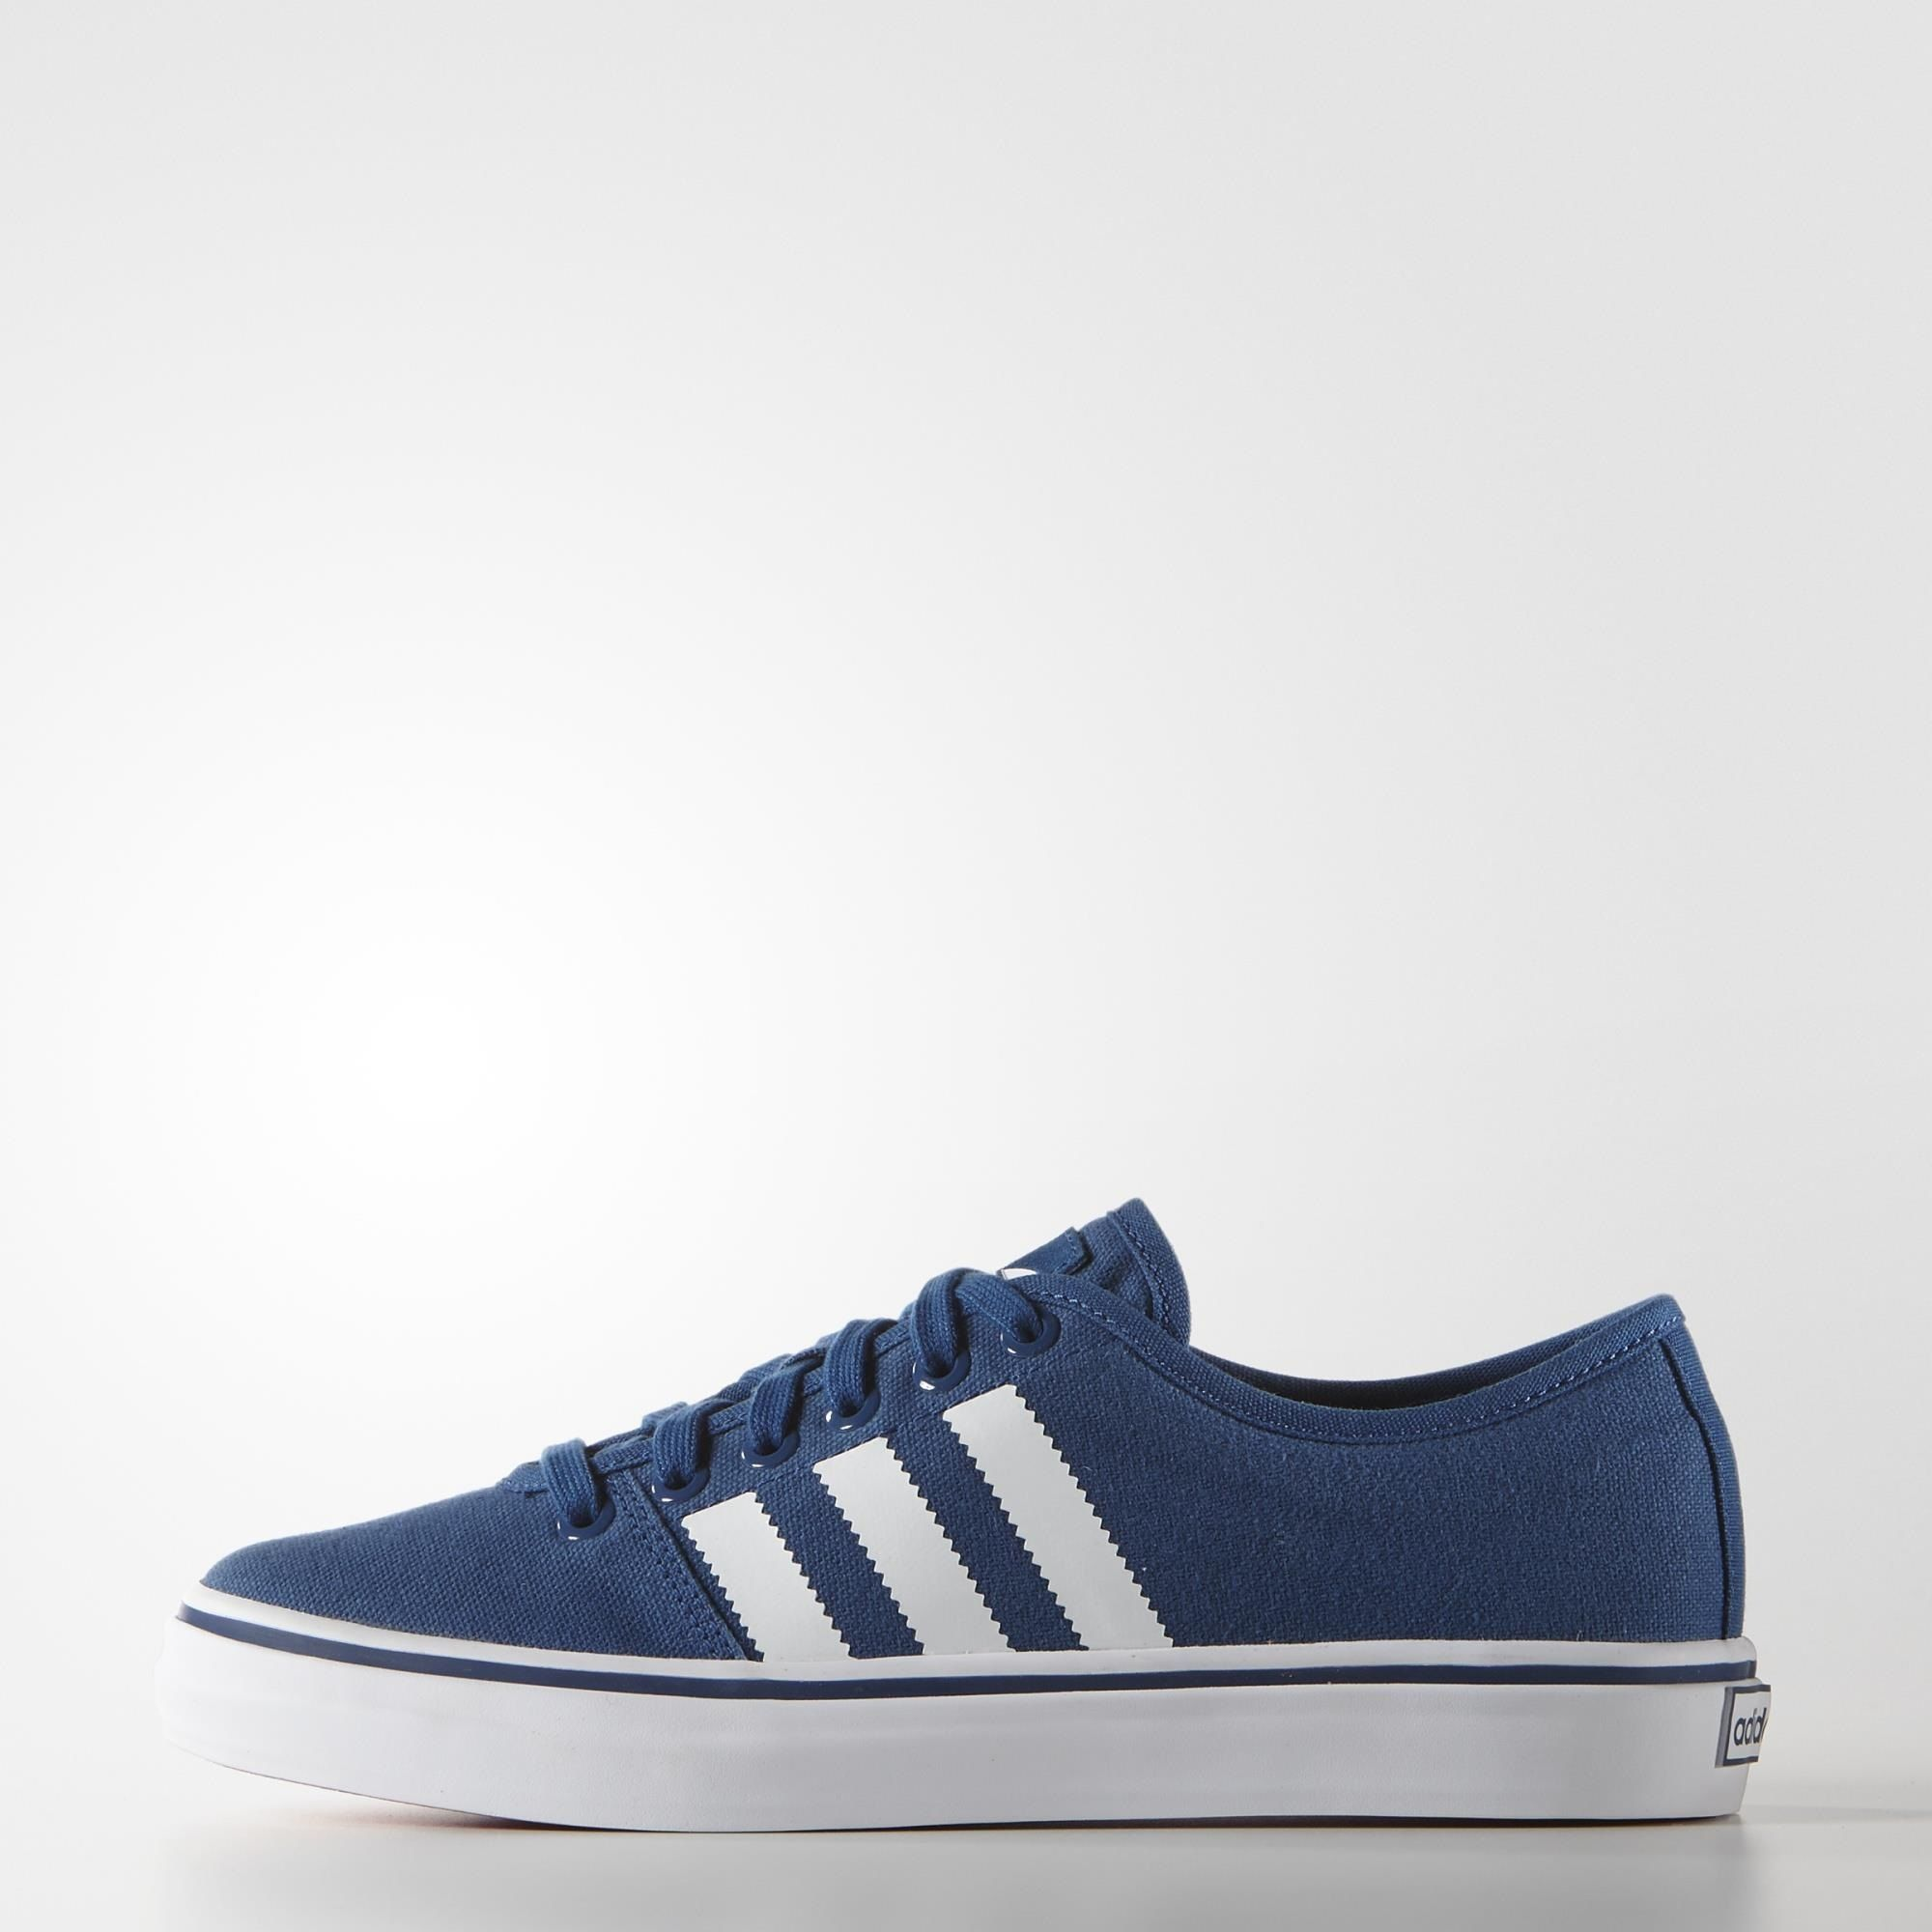 Discover your potential with adidas shoes for sports and lifestyle. Find  the right shoes in our online shop today.